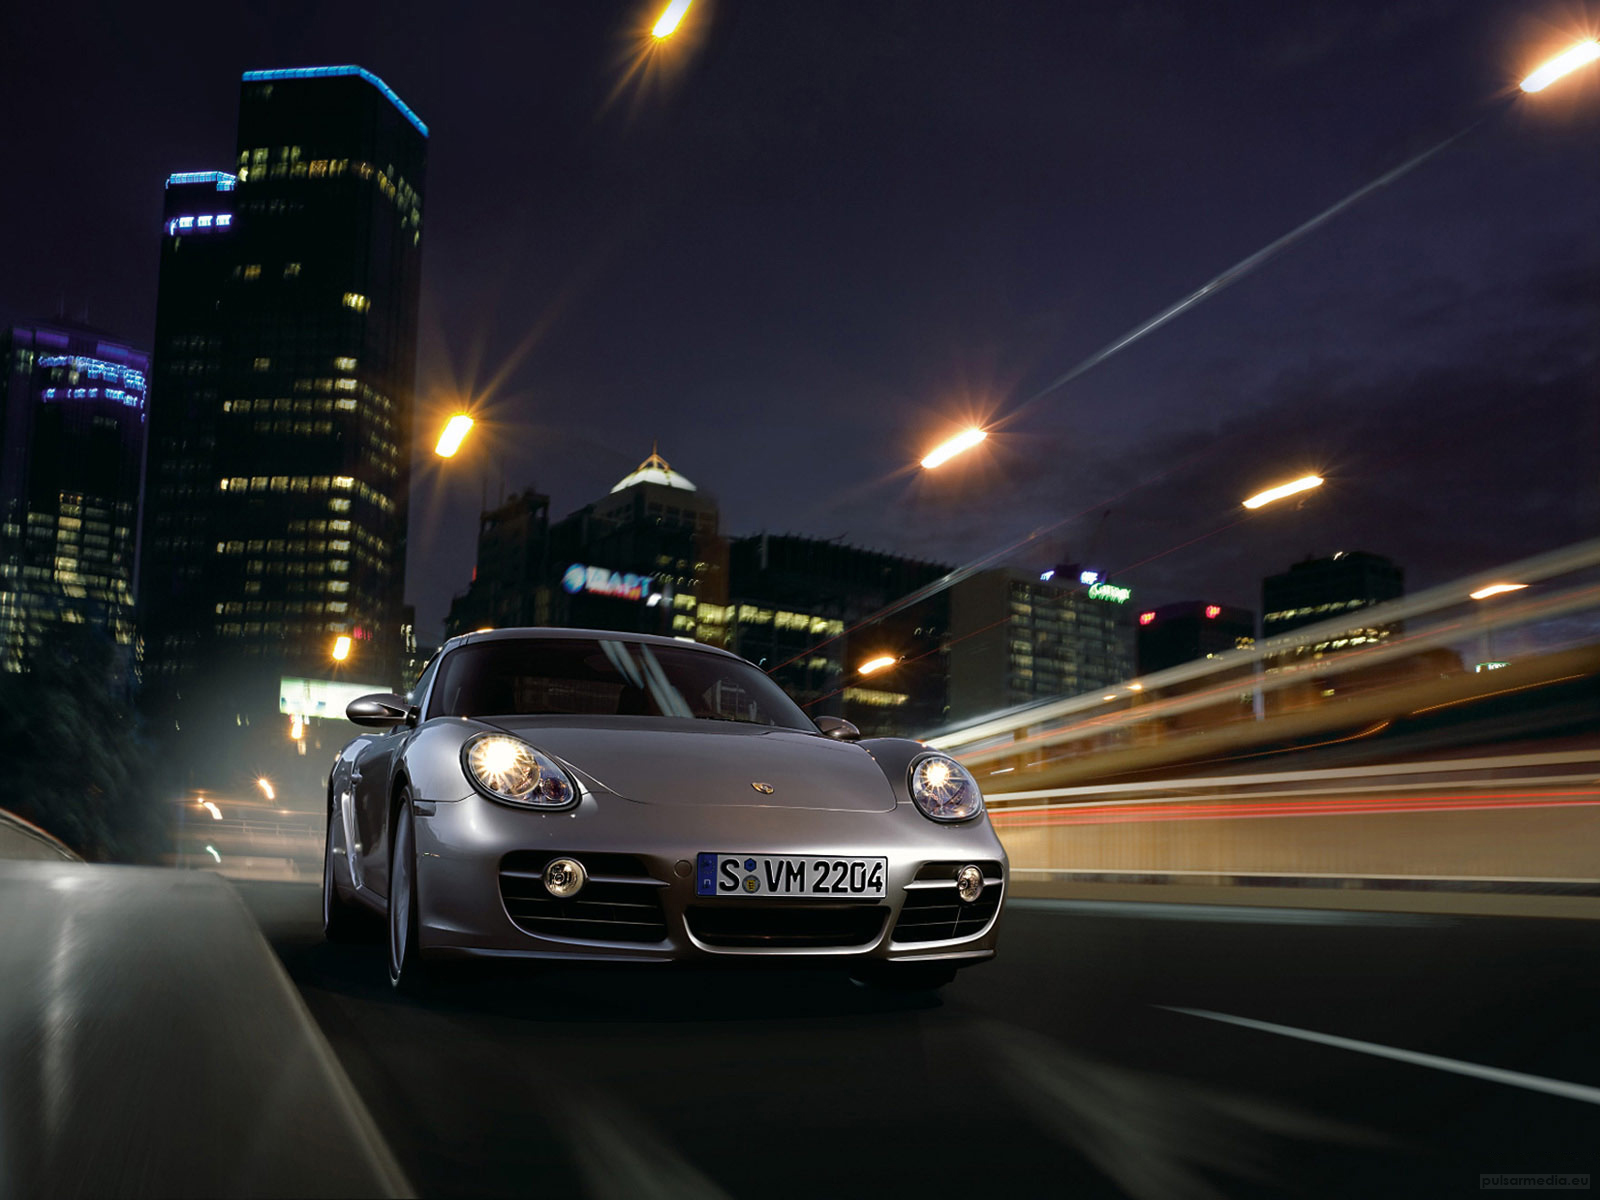 Cars Wallpapers: Porsche Cayman Wallpapers High Quality